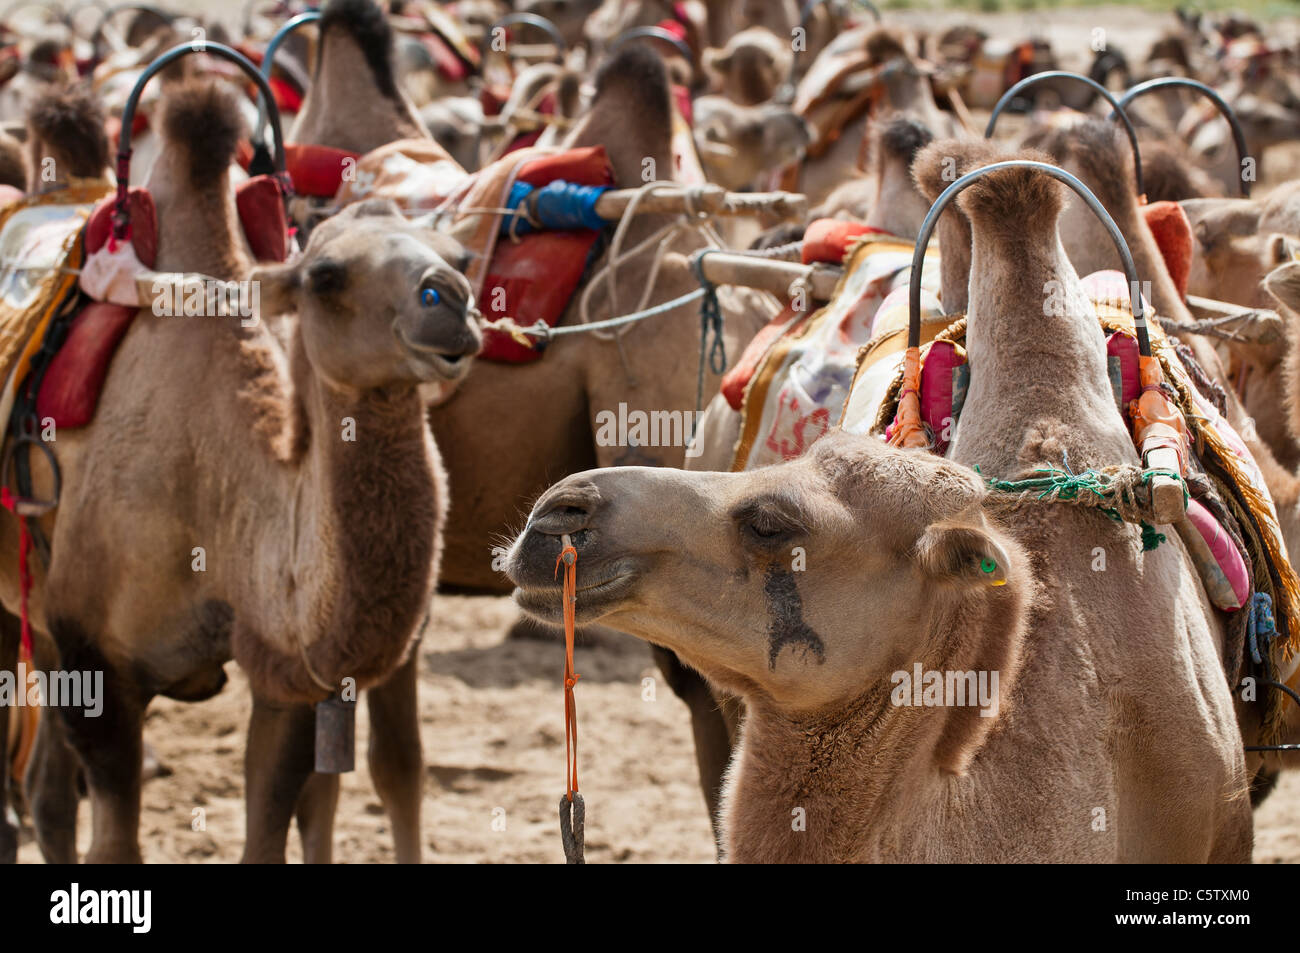 Herd of camels are parked awaiting tourists at Mingsha Sand Dunes, Dunhuang, Gansu Province, China - Stock Image